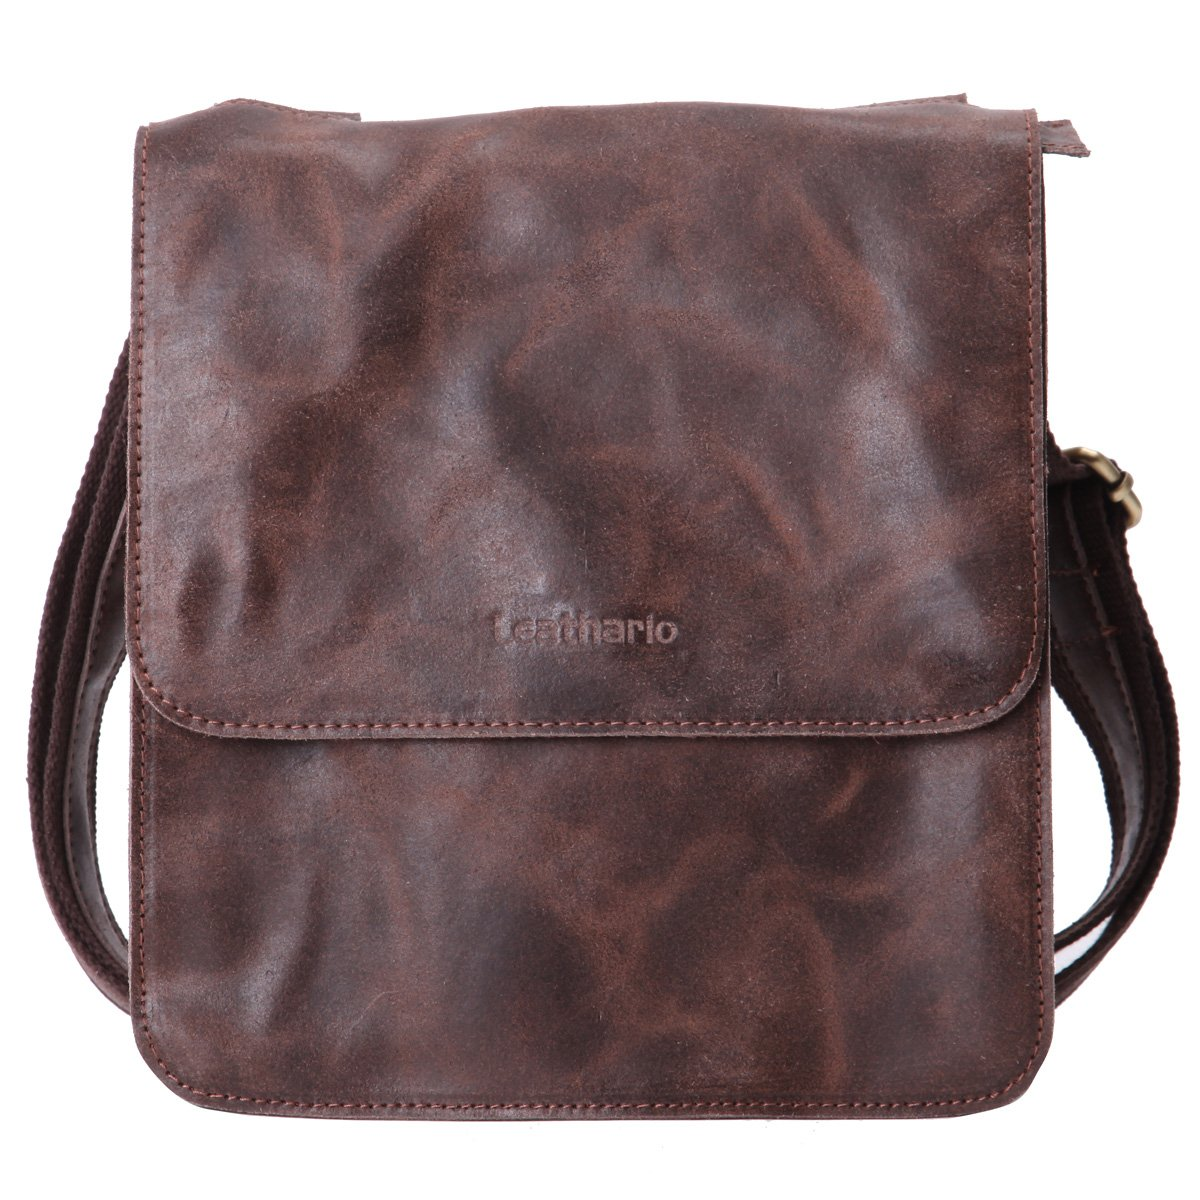 Leathario Leather Shoulder Bag Men's Retro Leather Messenger Bag Crossbody Bag Satchel Bag Ipad Bag 11 inch Brown